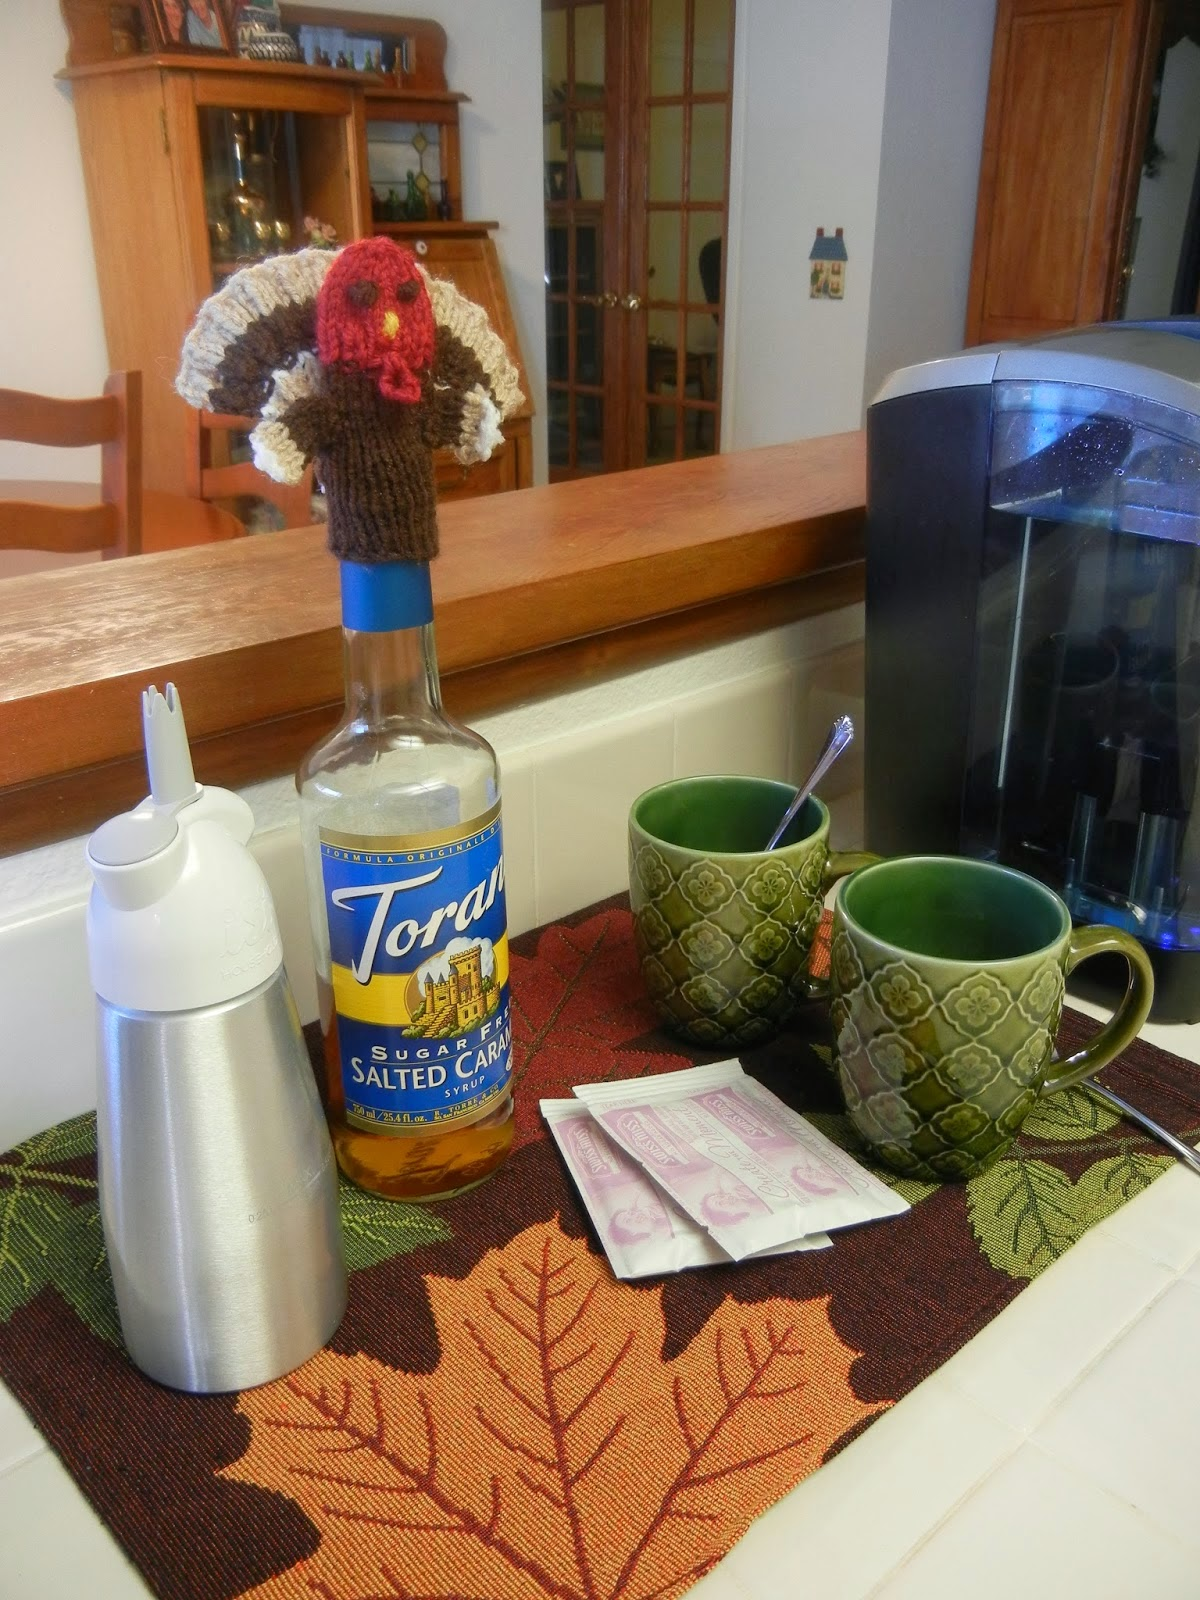 Torani%2BSugar%2BFree%2BSalted%2BCaramel%2BSyrup%2BThanksgiving%2BTopper%2BCocoa Weight Loss Recipes Friday Five